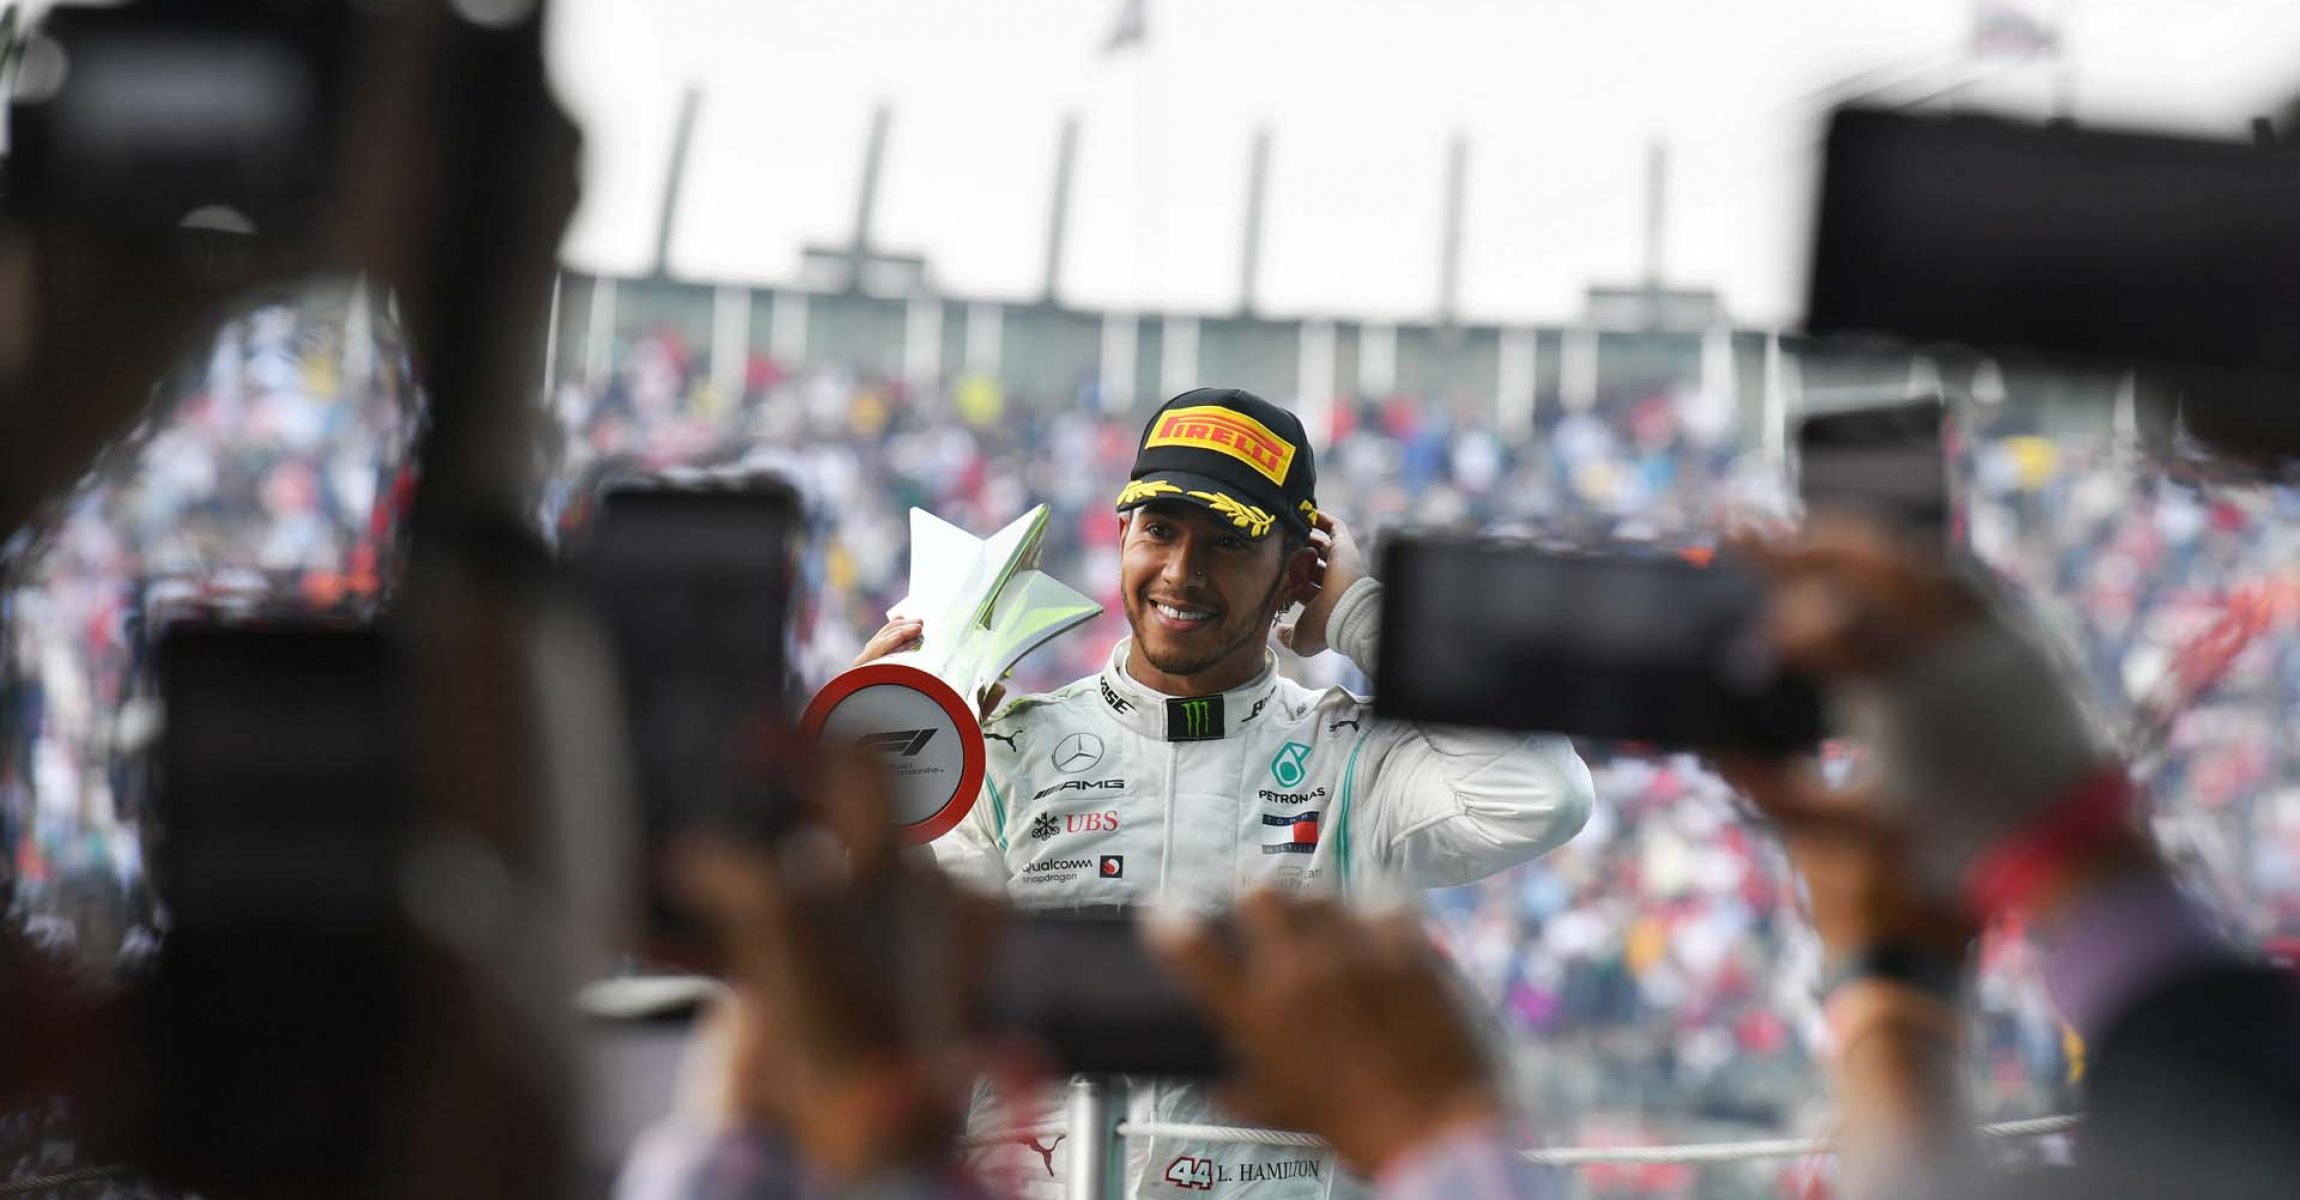 MEXICO CITY - OCTOBER 27: Race winner Lewis Hamilton, Mercedes AMG F1 on the ovum with the trophy during the 2019 Formula One Mexican Grand Prix at Autodromo Hermanos Rodriguez, on October 27, 2019 in Mexico City, Mexico. (Photo by Mark Sutton / LAT Images)